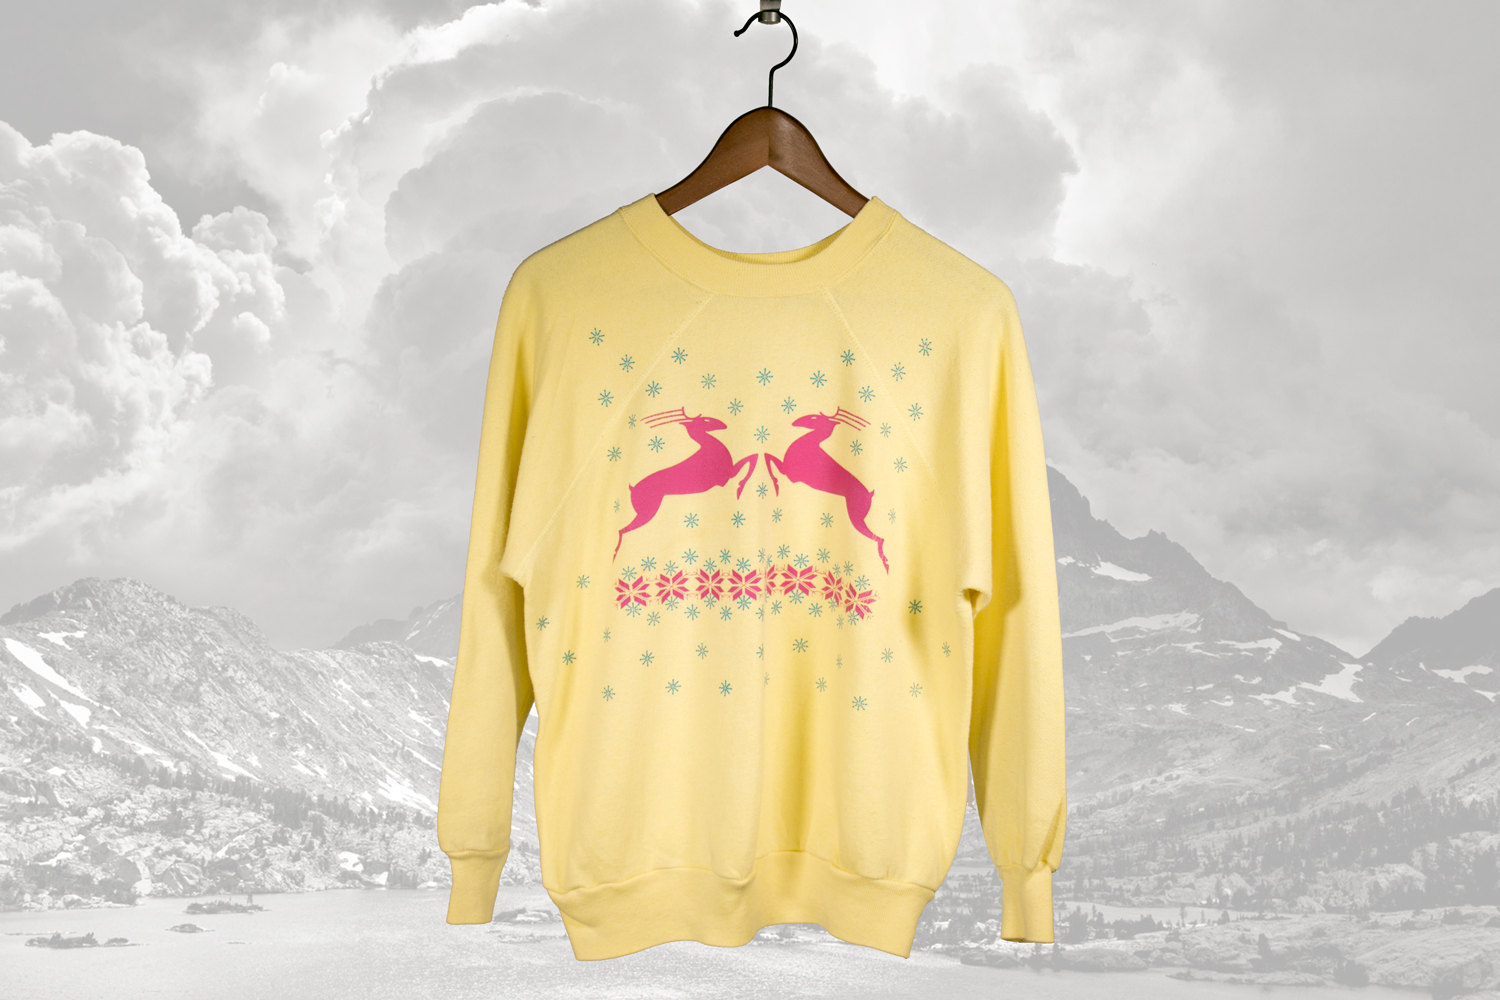 Vintage Flying Deer & Snowflakes Sweater circa 1980's - Winter / Christmas / Holiday - Great Colors!  Women's M-L